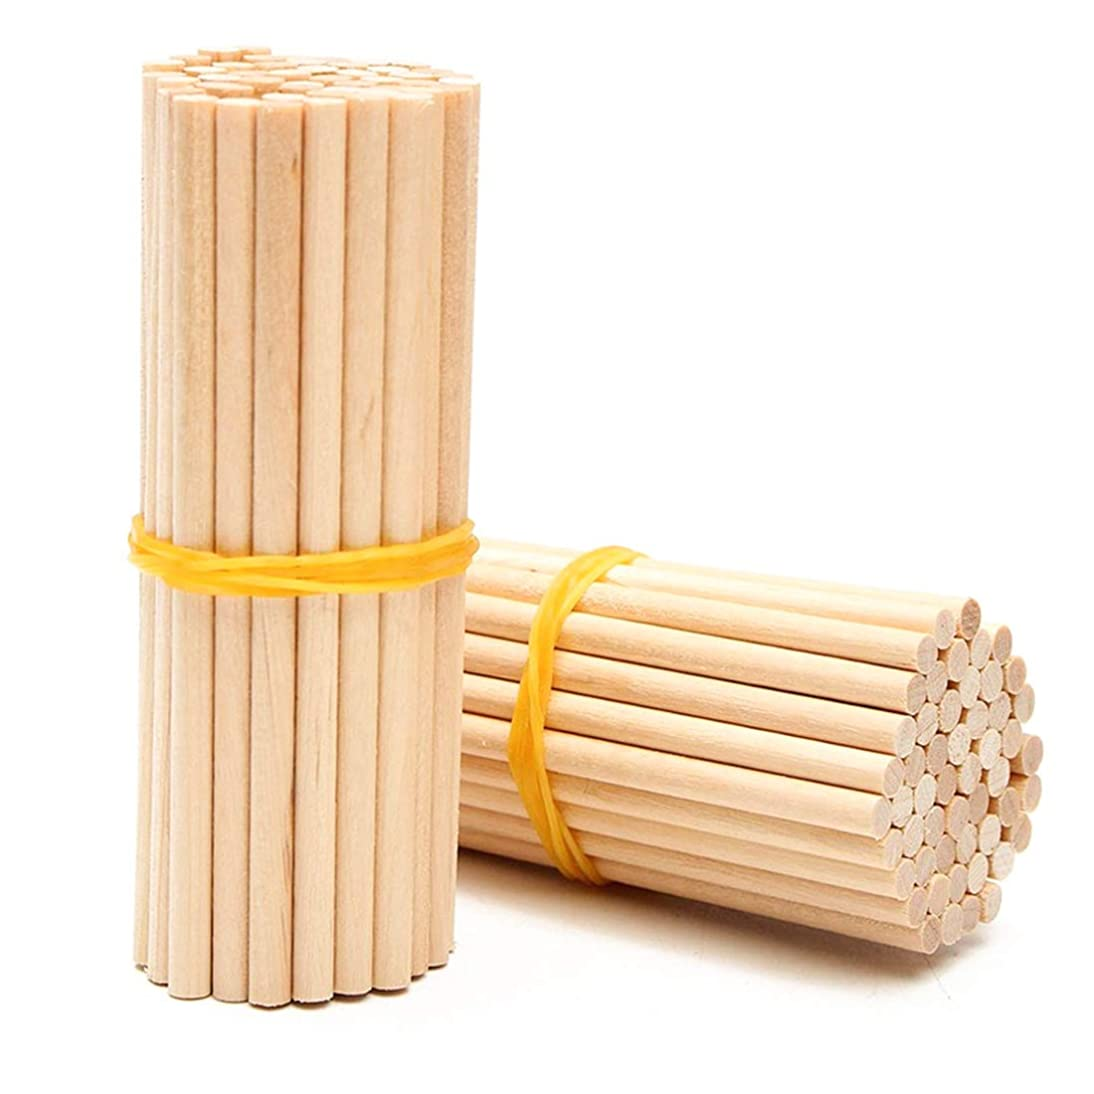 Dowel Rods 100 Pieces Natural Bamboo Unfinished Dowel Rods Craft Sticks for DIY Crafts Model Projects Making Building Woodcraft Woodworking Kids Educational Toys - 200mm, Diameter 4mm (6mm)